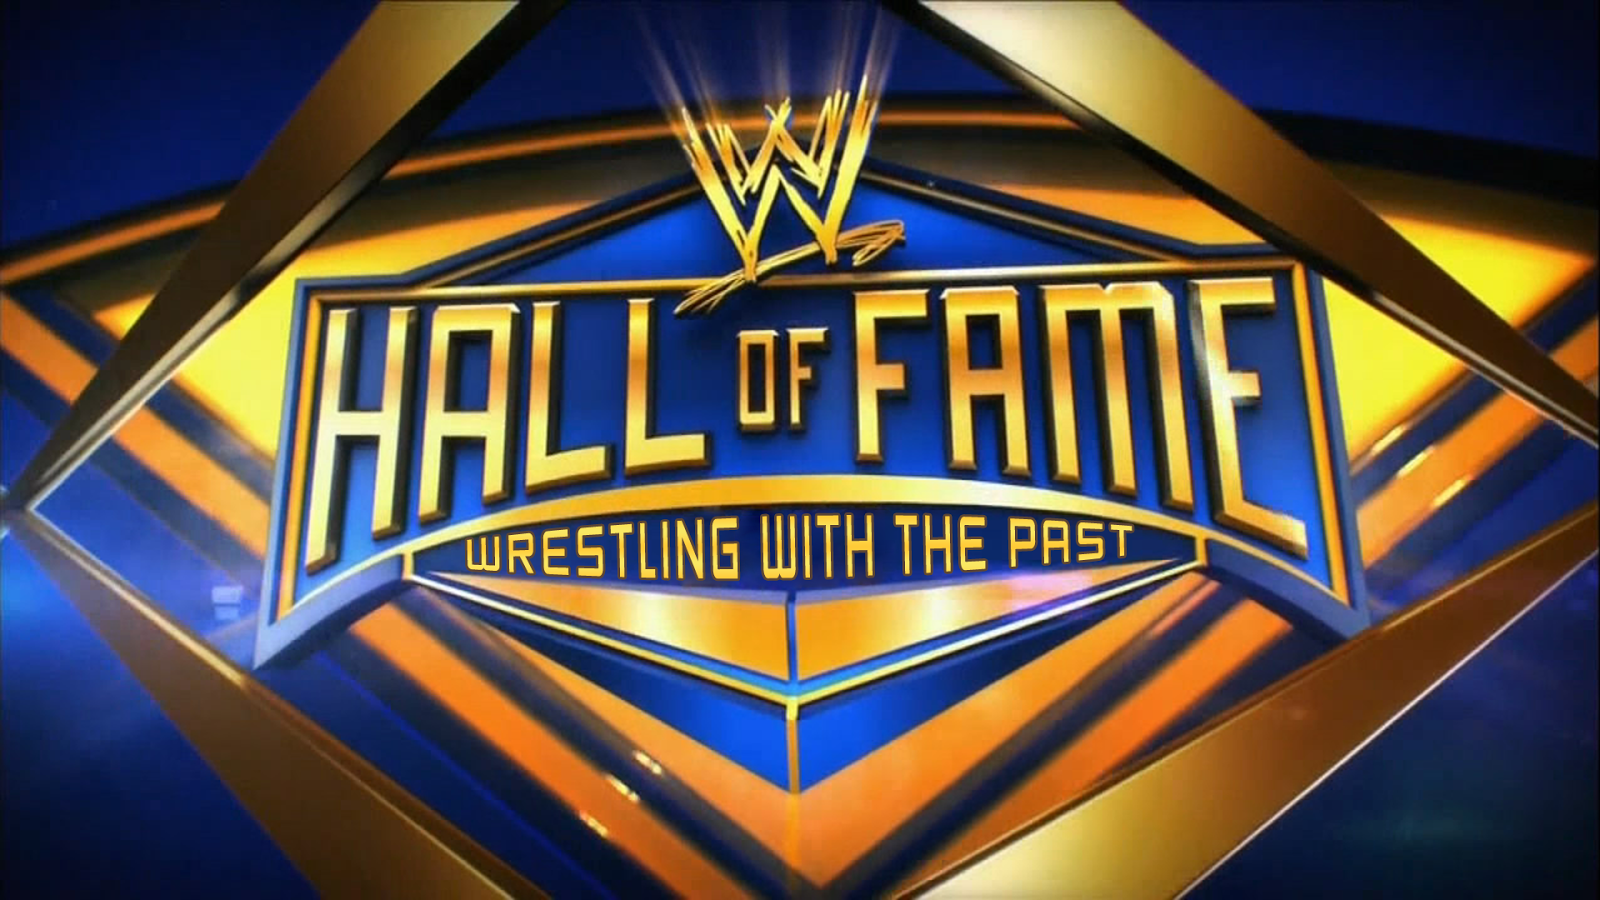 List of WWE Hall of Fame Inductees Classes